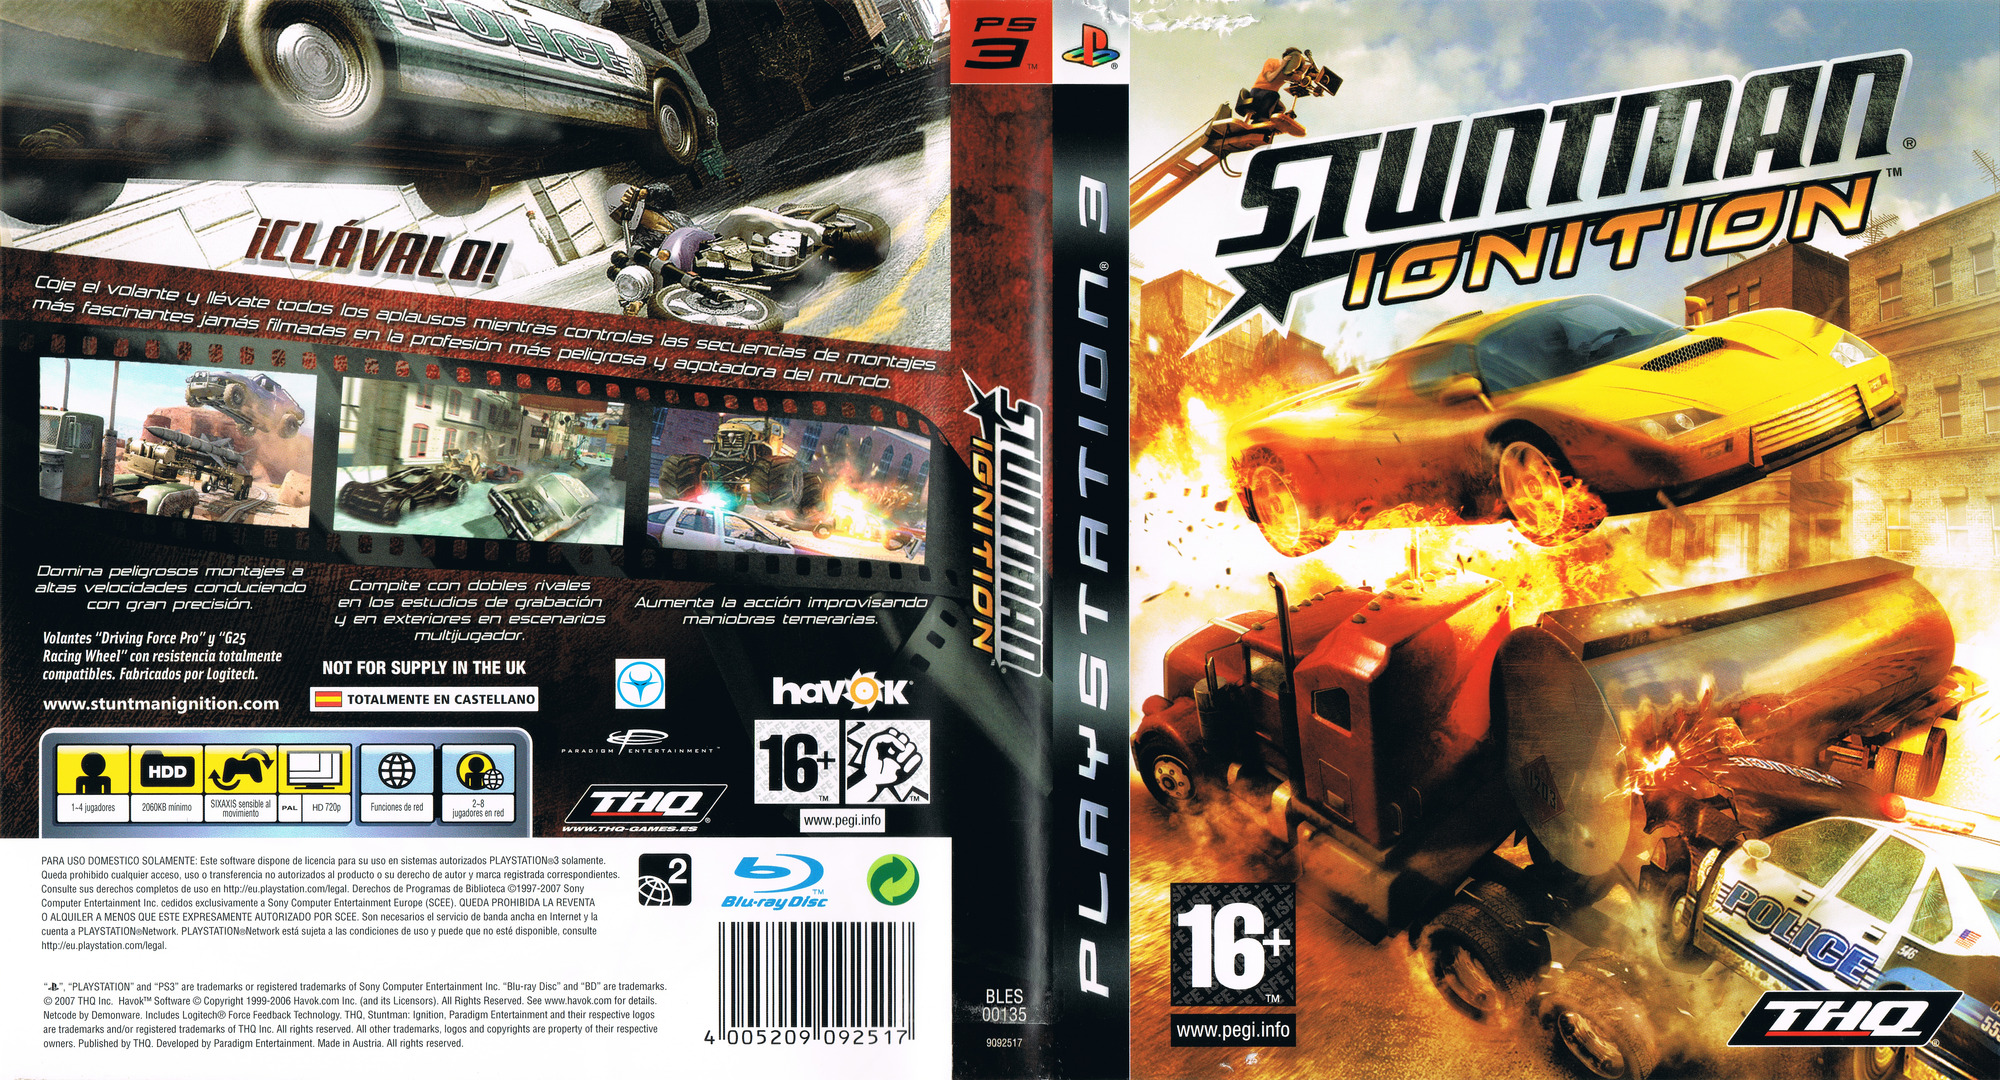 Stuntman: Ignition PS3 coverfullHQ (BLES00135)